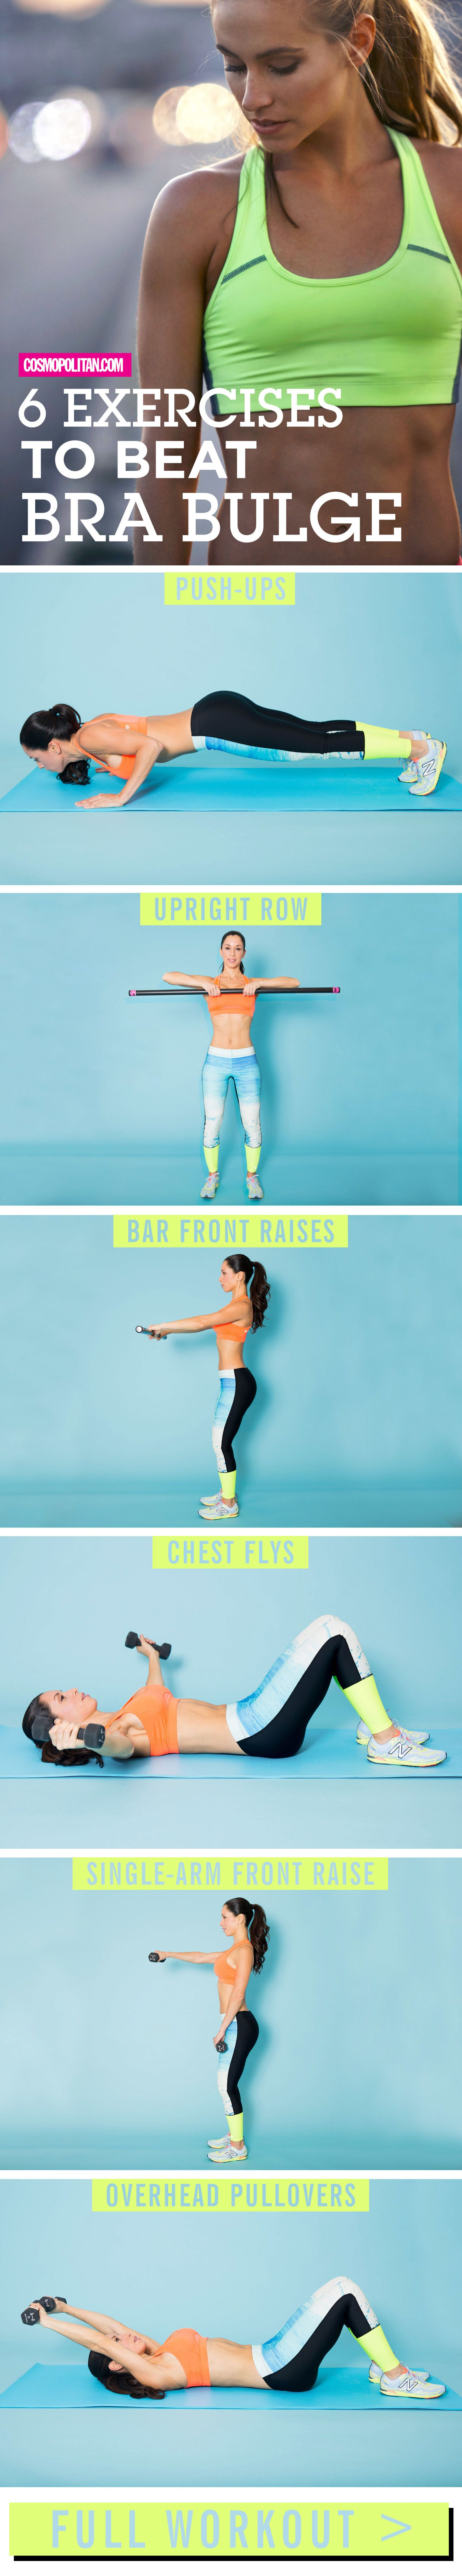 6 exercises to beat bra bulge target workout and exercises